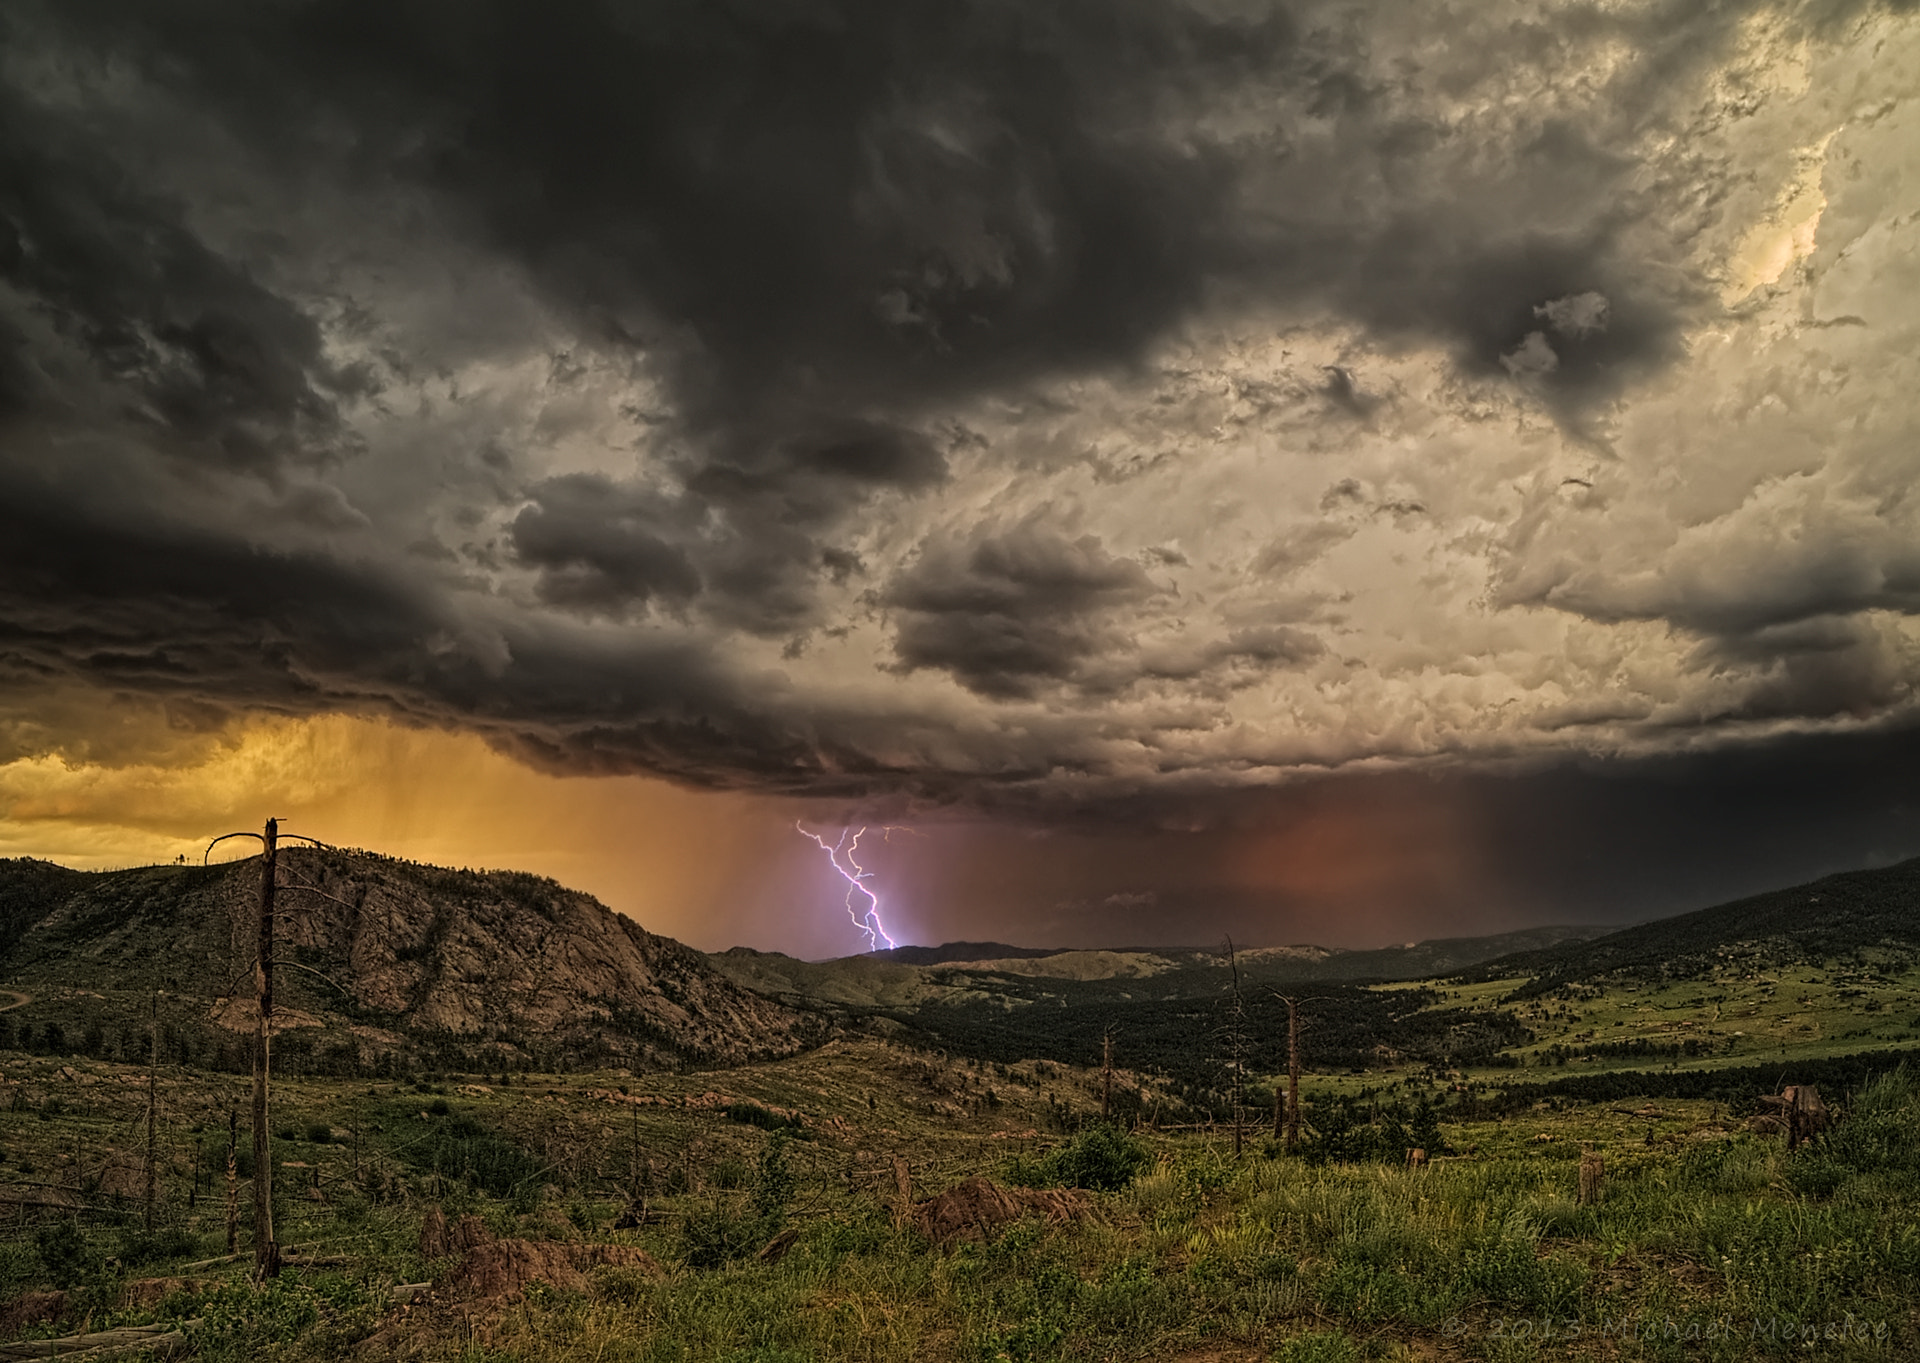 Photograph Storm Mountain Tempest by Michael Menefee on 500px